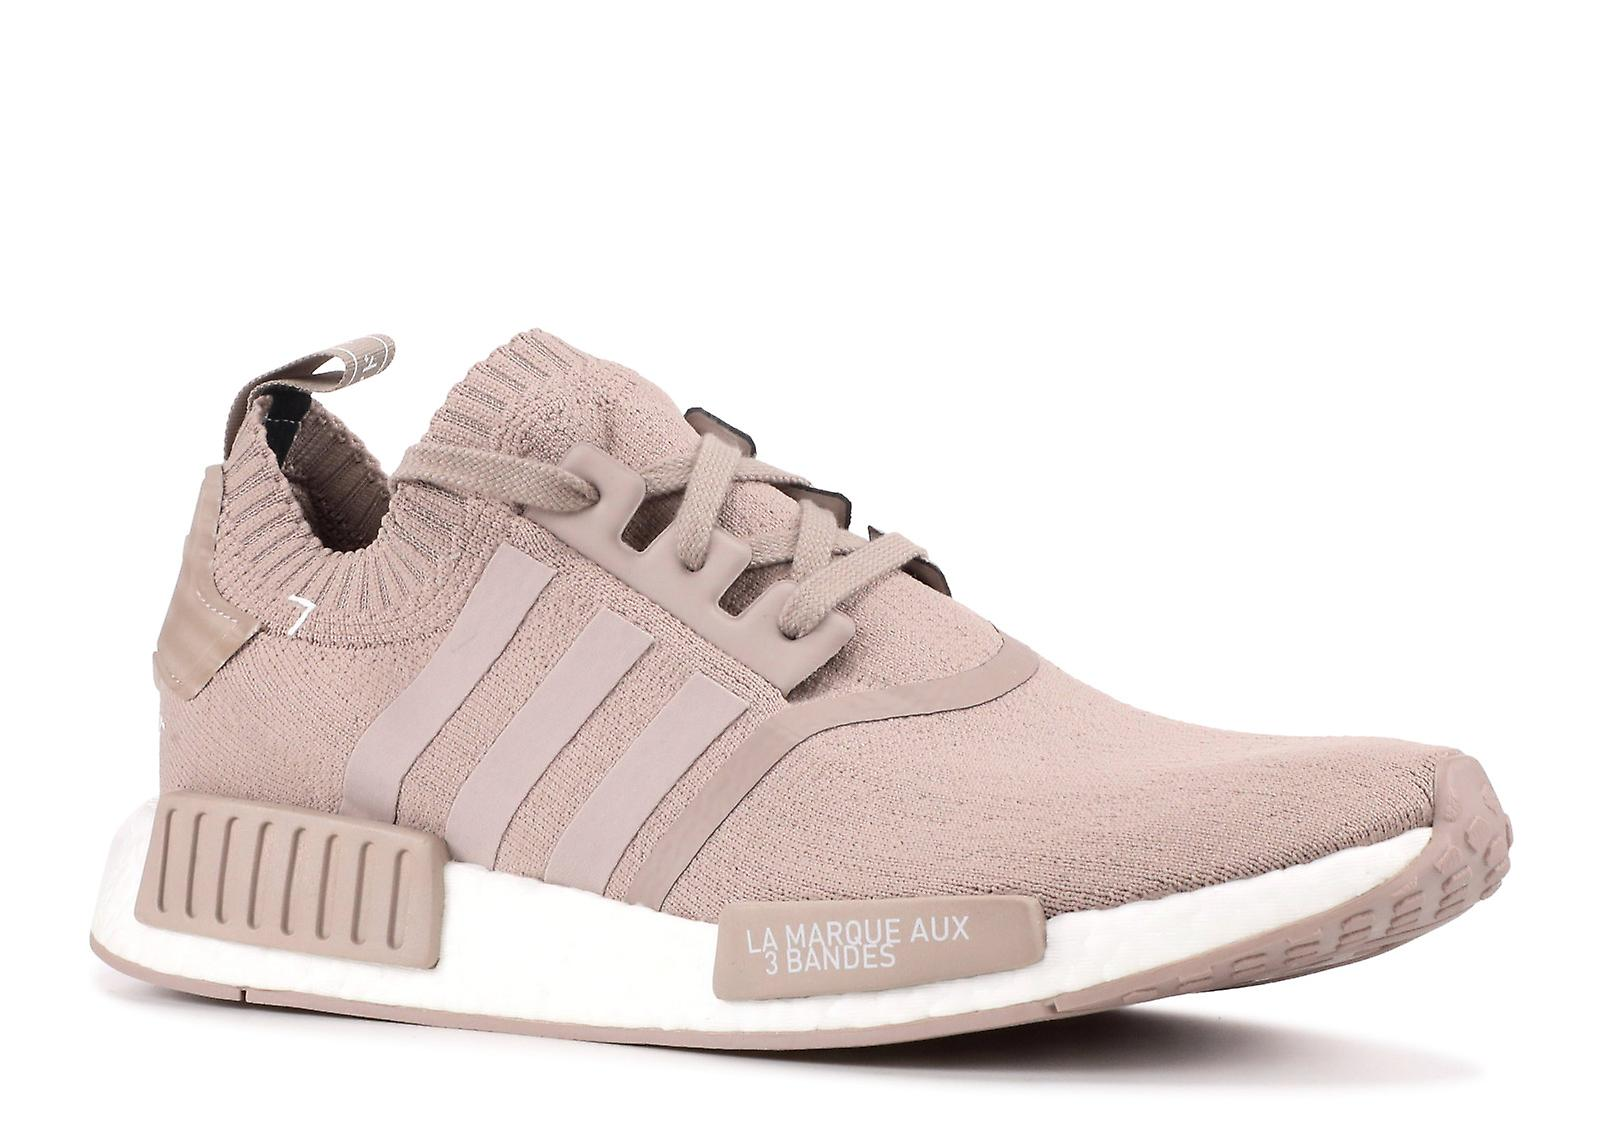 4c5020b519b7 Nmd R1 Pk  French Beige  - S81848 - Shoes